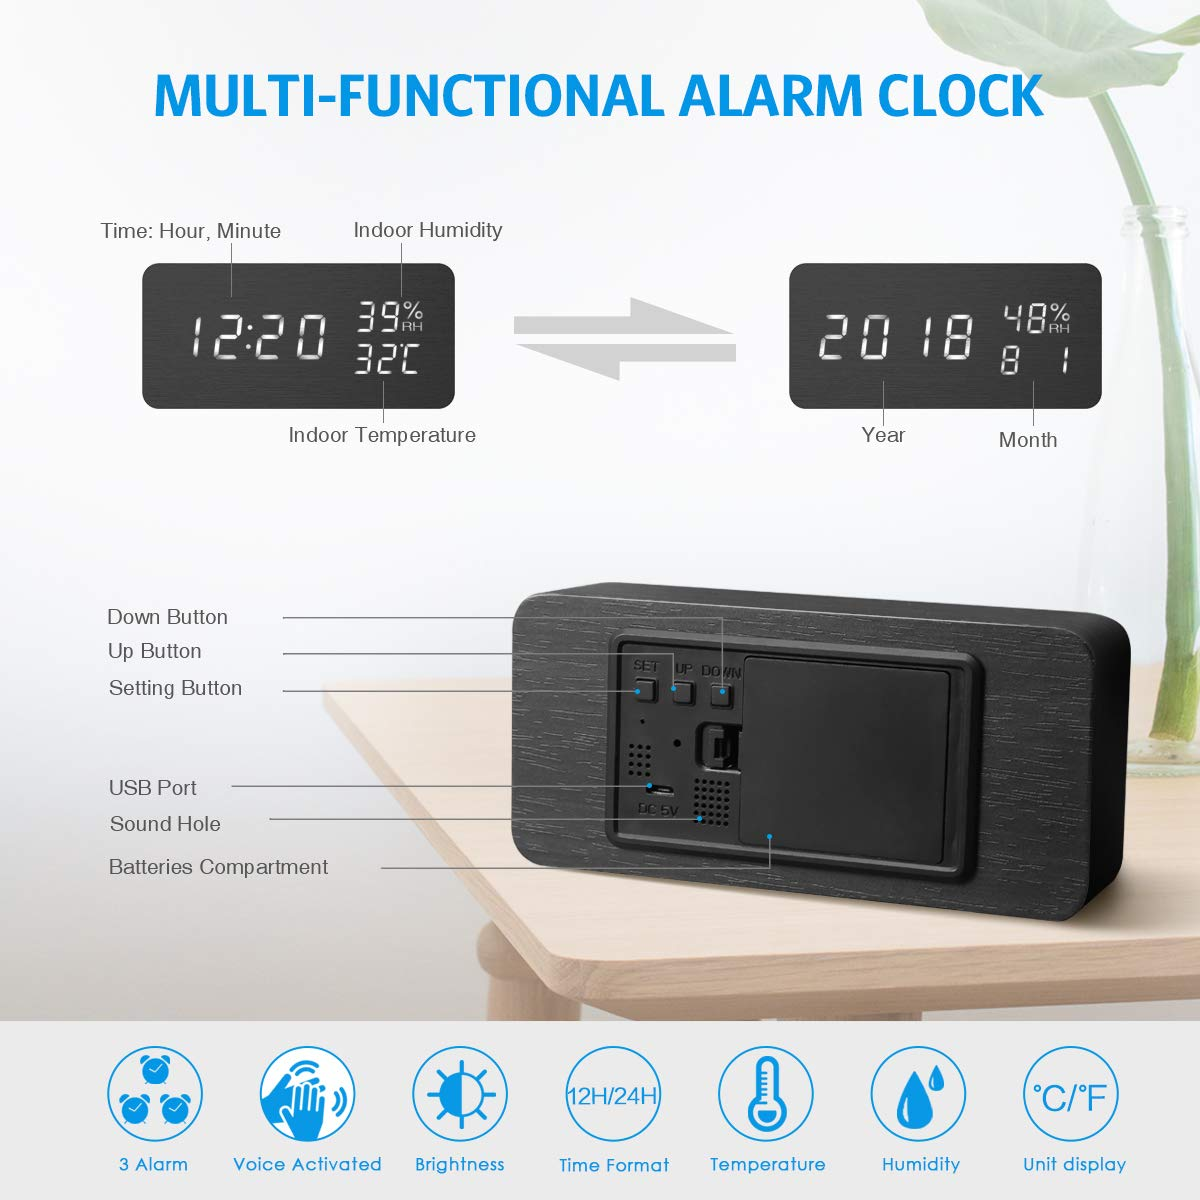 AMIR Alarm Clock, Wooden Digital Multi-Function Modern Cube LED Light, Smart Voice-Activated with 3 Alarm Sounds, Display Date Temperature & Humidity for Home, Kitchen, Bedroom (Black) by AMIR (Image #2)